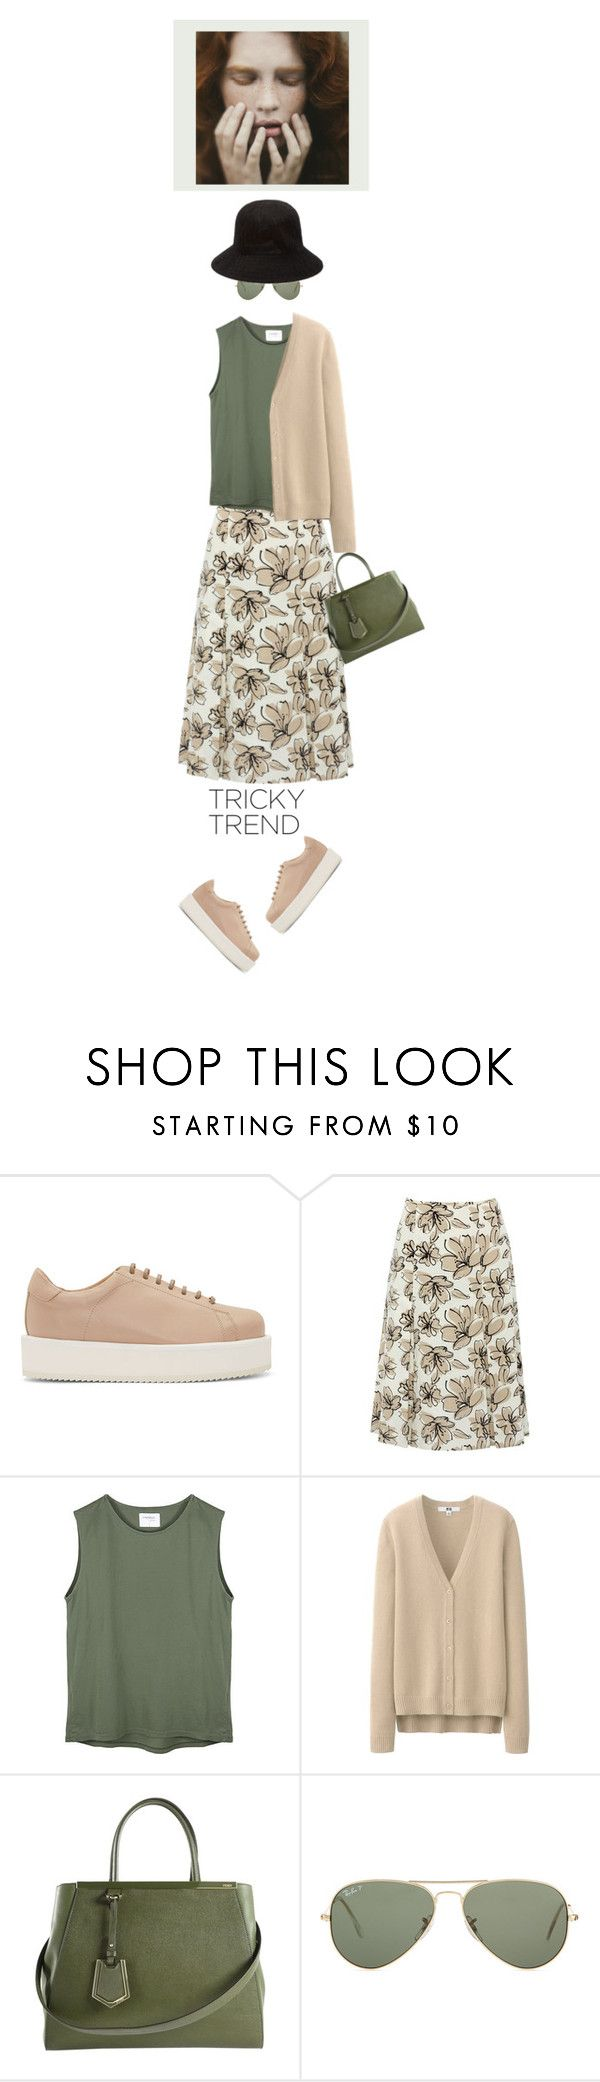 """""""New Pair of Platform Sneakers'"""" by dianefantasy ❤ liked on Polyvore featuring SILENT by Damir Doma, M&Co, Uniqlo, Fendi, Ray-Ban, Forever 21, platformsneakers and polyvoreeditorial"""